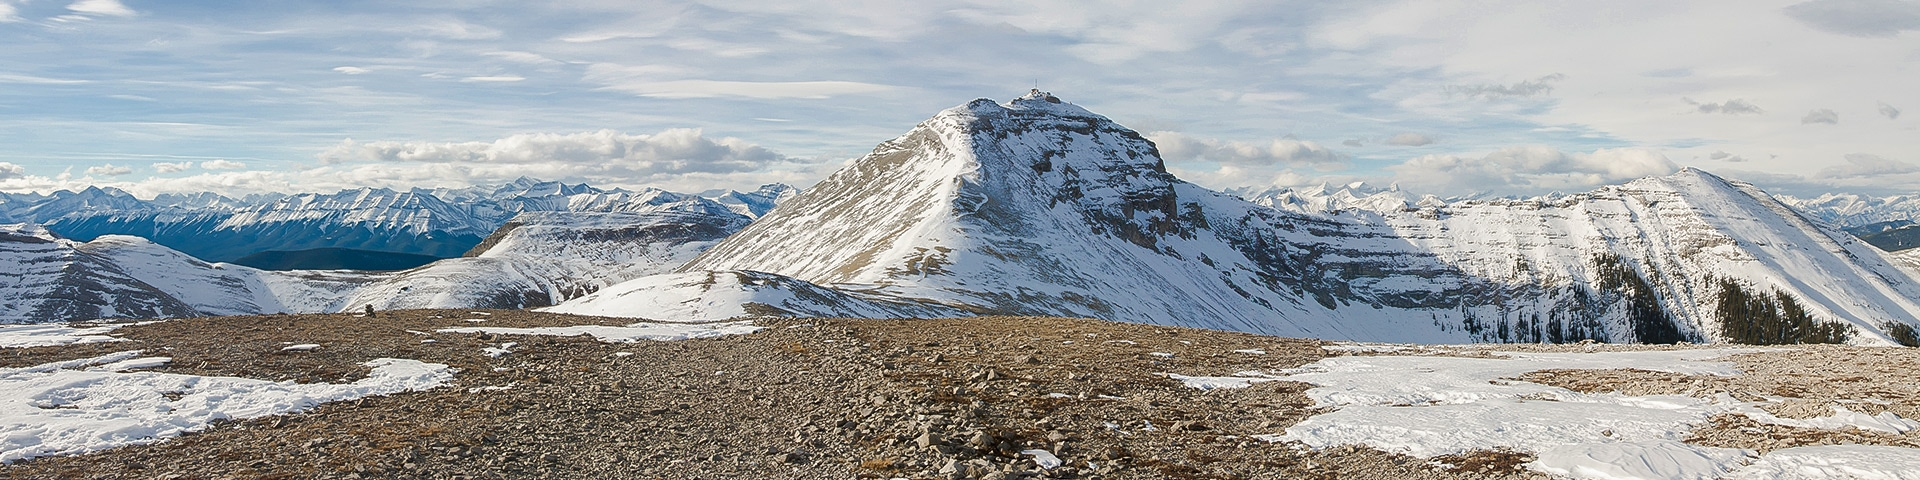 Panorama from the Moose Mountain hike near Kananaskis and Canmore